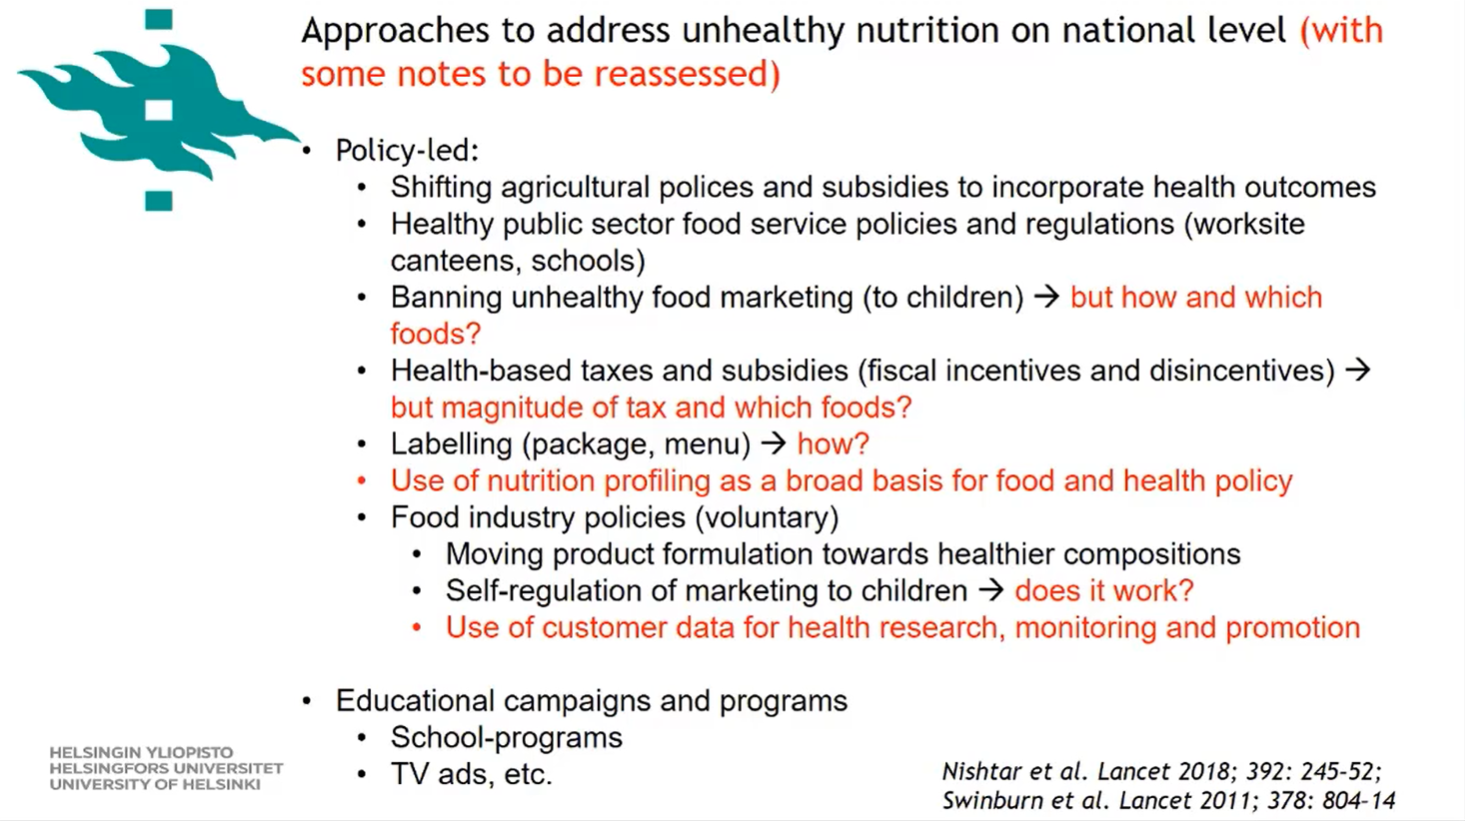 Reassessing Prevention Strategies for Unhealthy Nutrition